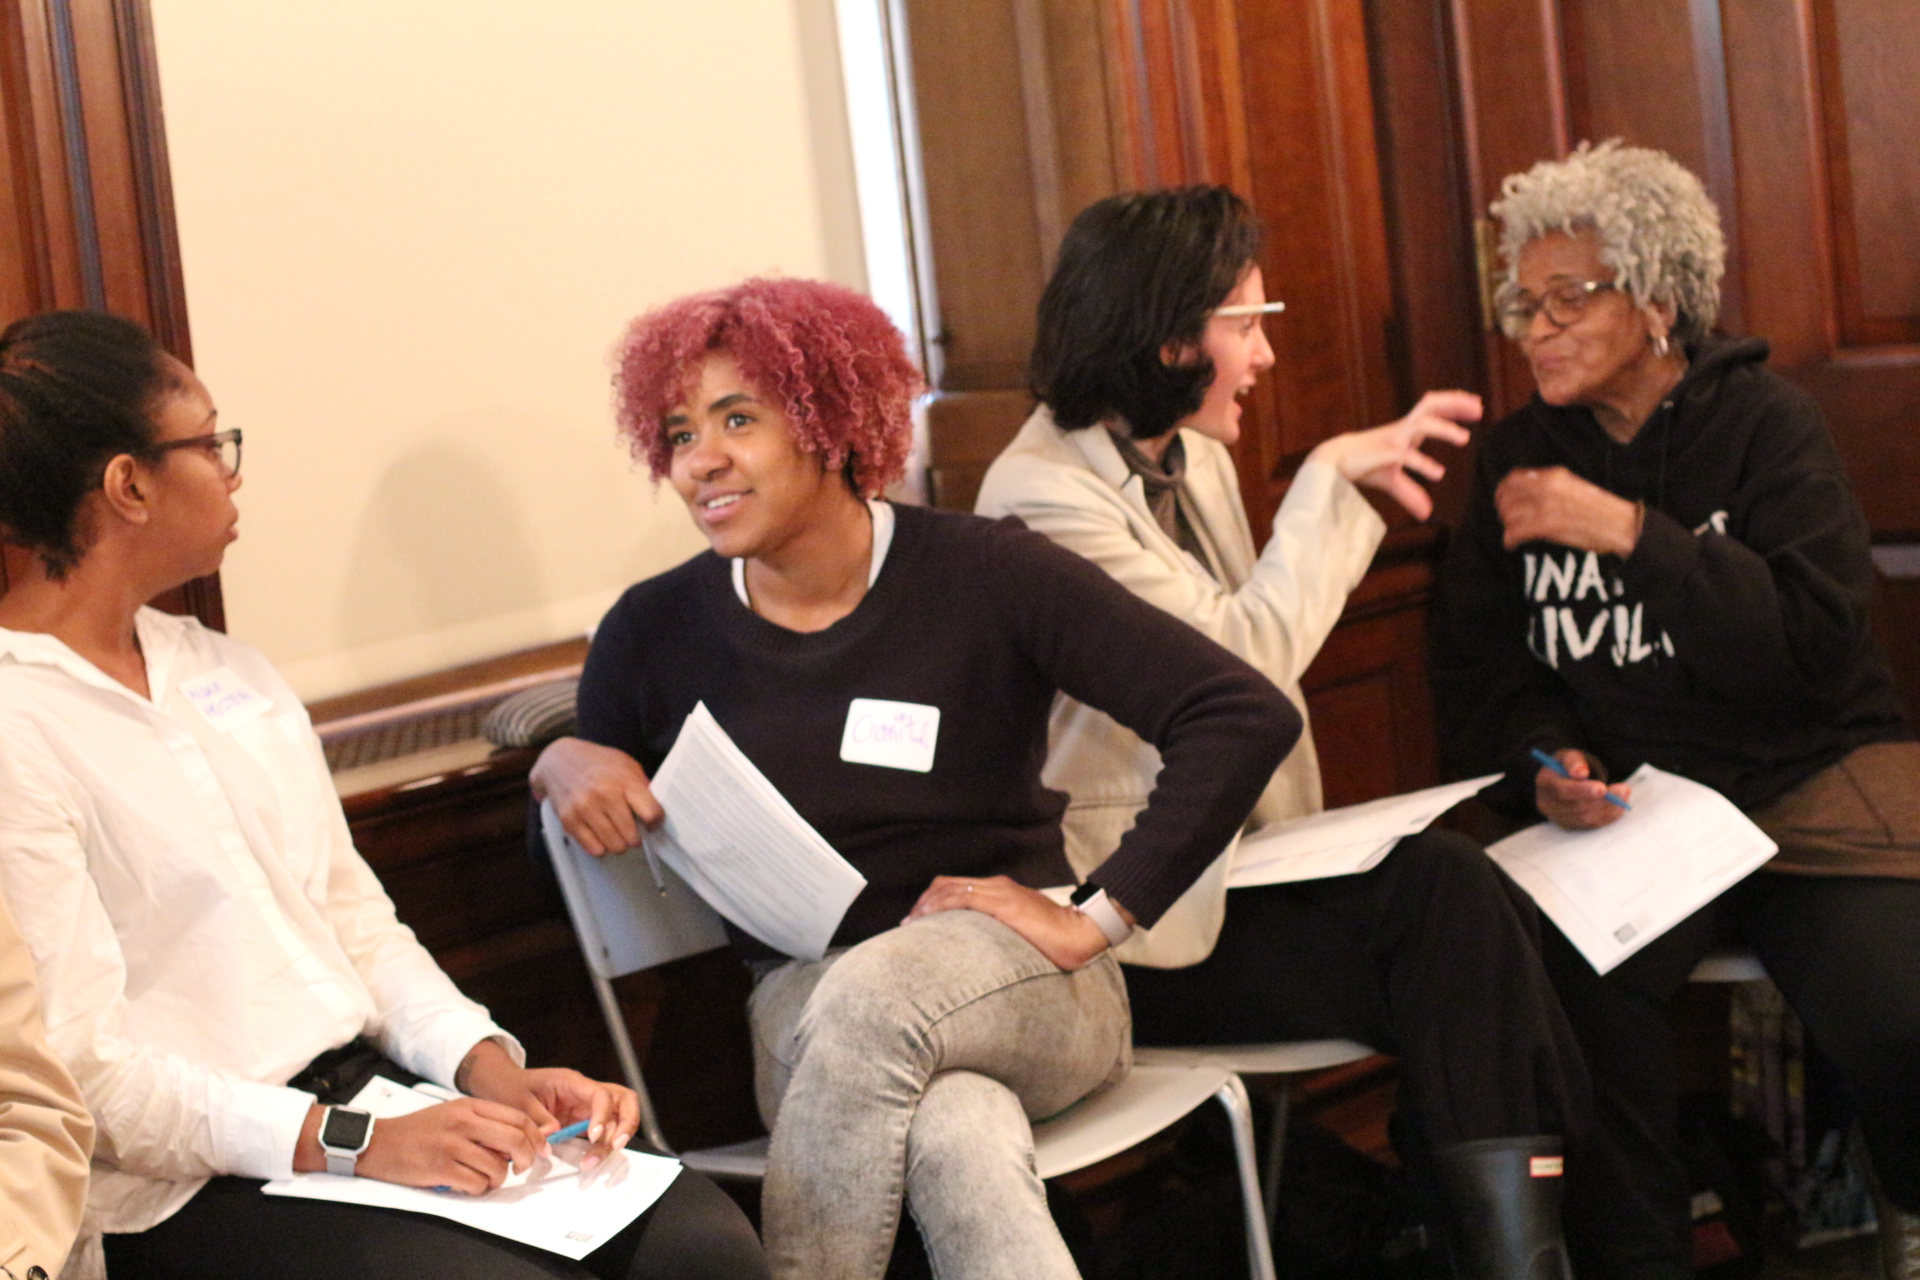 Teachers in conversation during a workshop at the Museum of the City of New York.